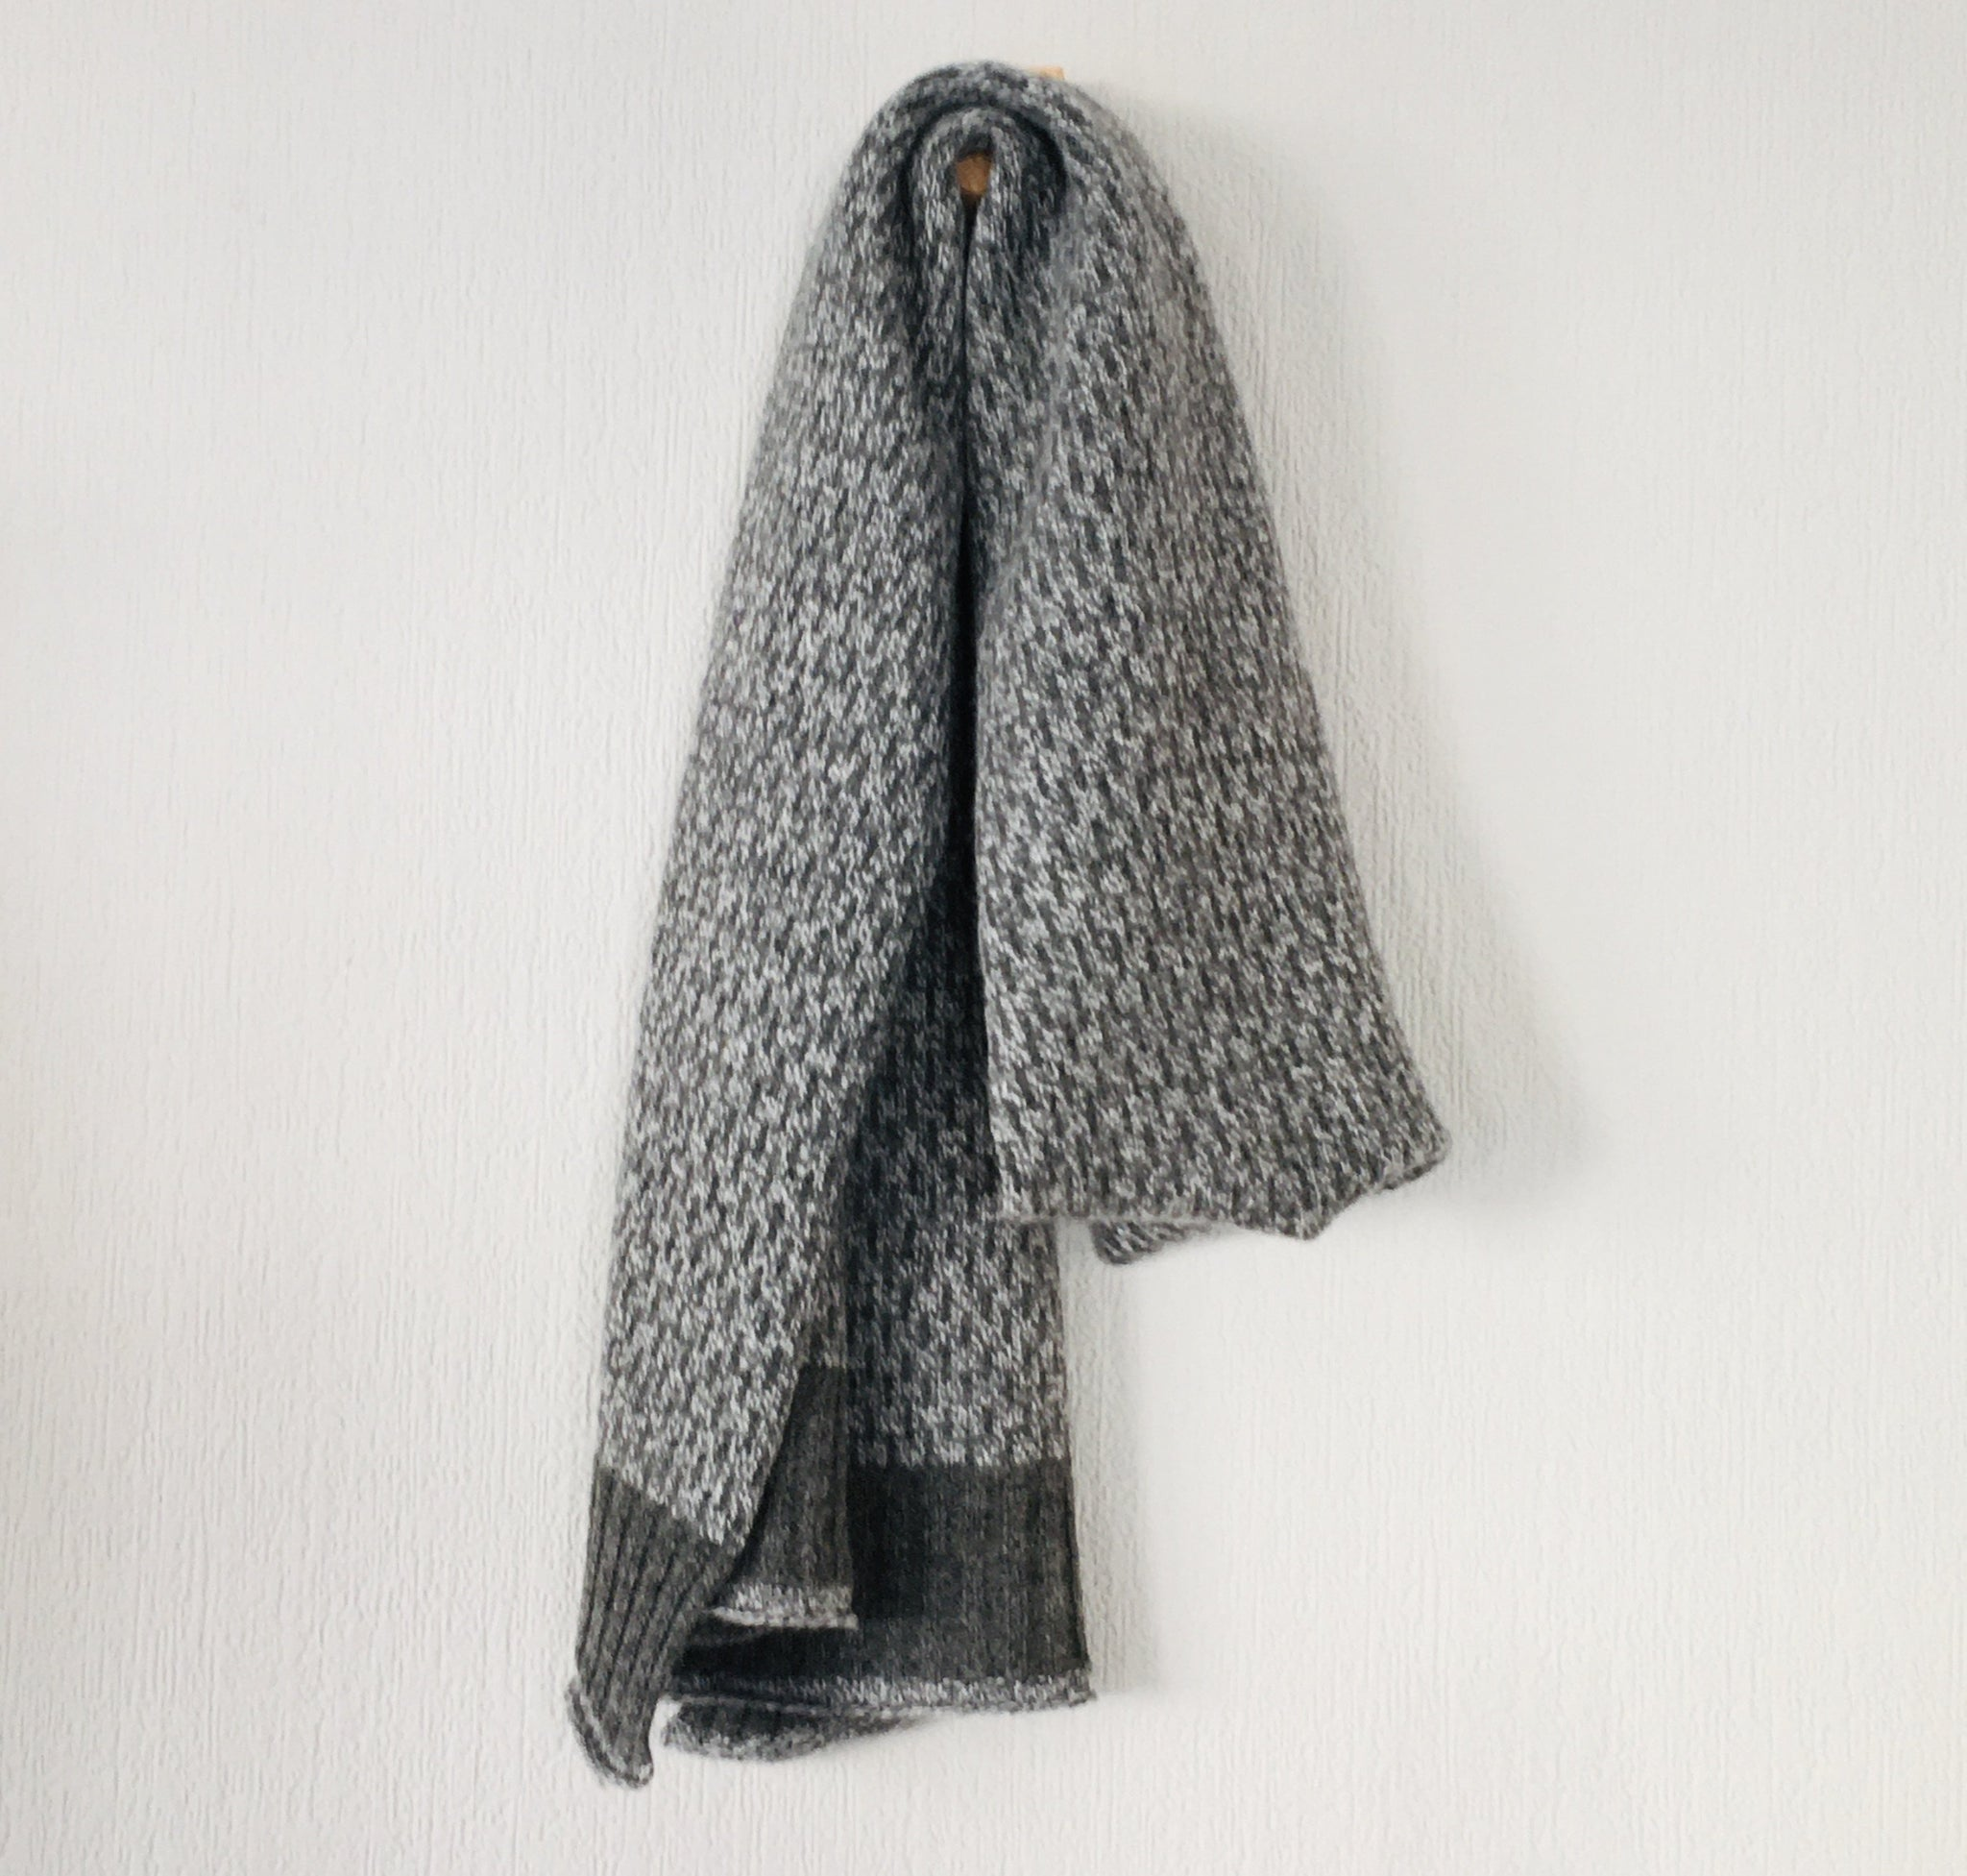 Scarf - super soft merino lambswool Nordic scarf in marled cliff grey and silver grey